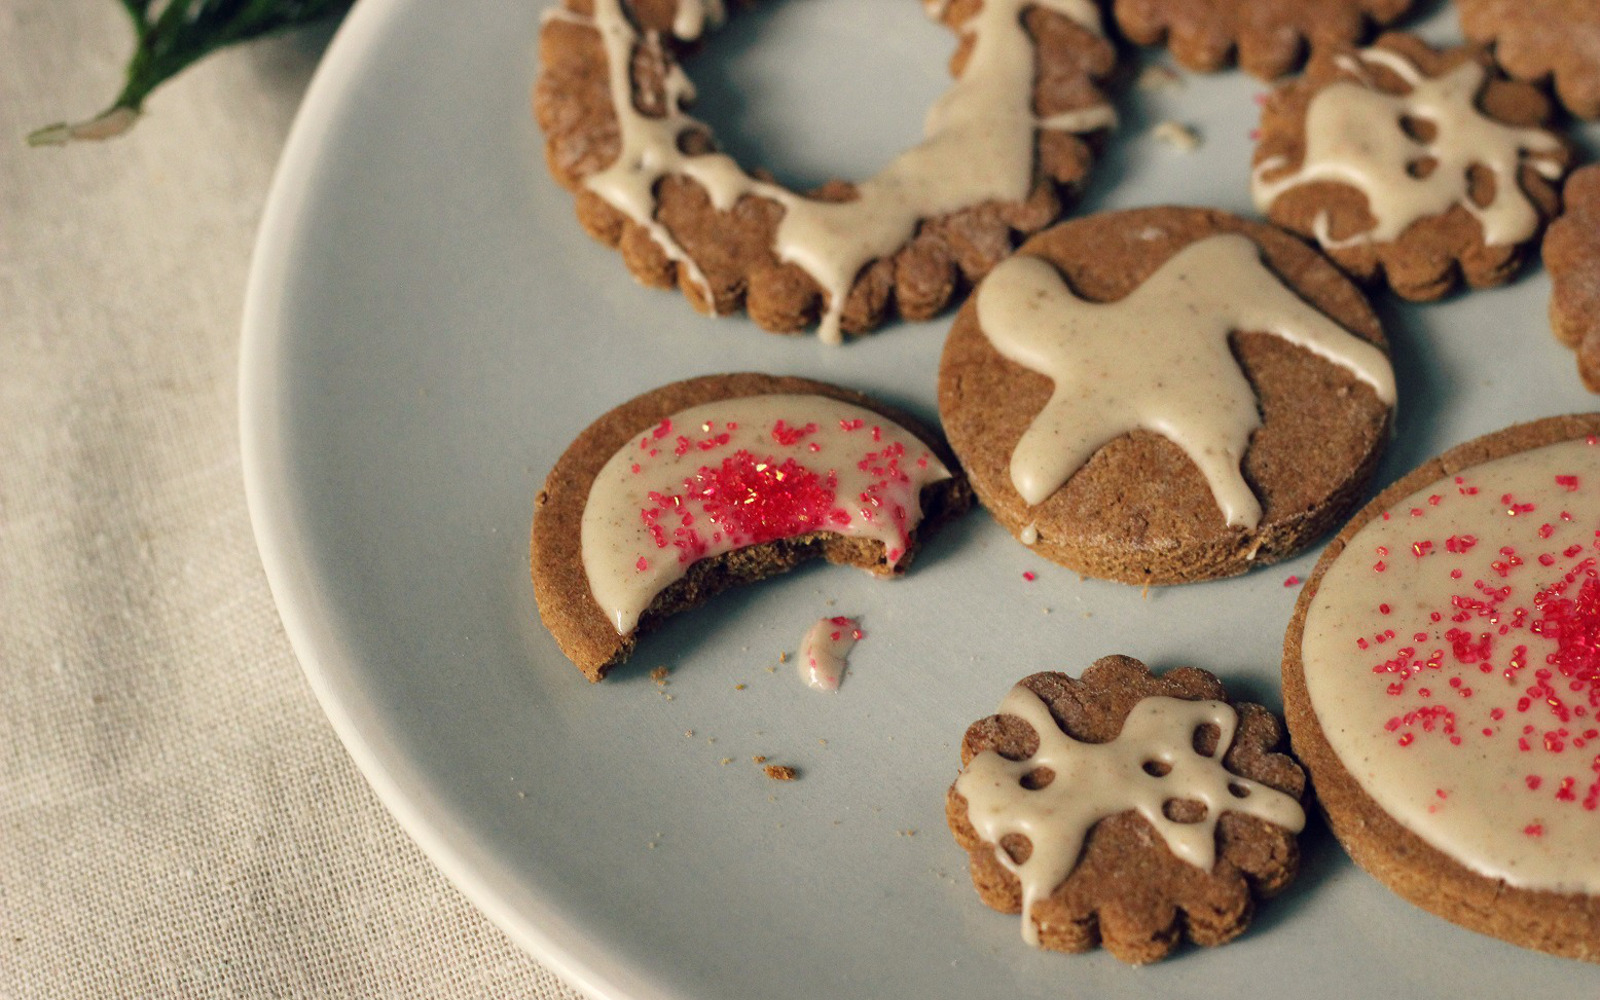 Gingerbread Cut-Outs With Cardamom Vanilla Glaze